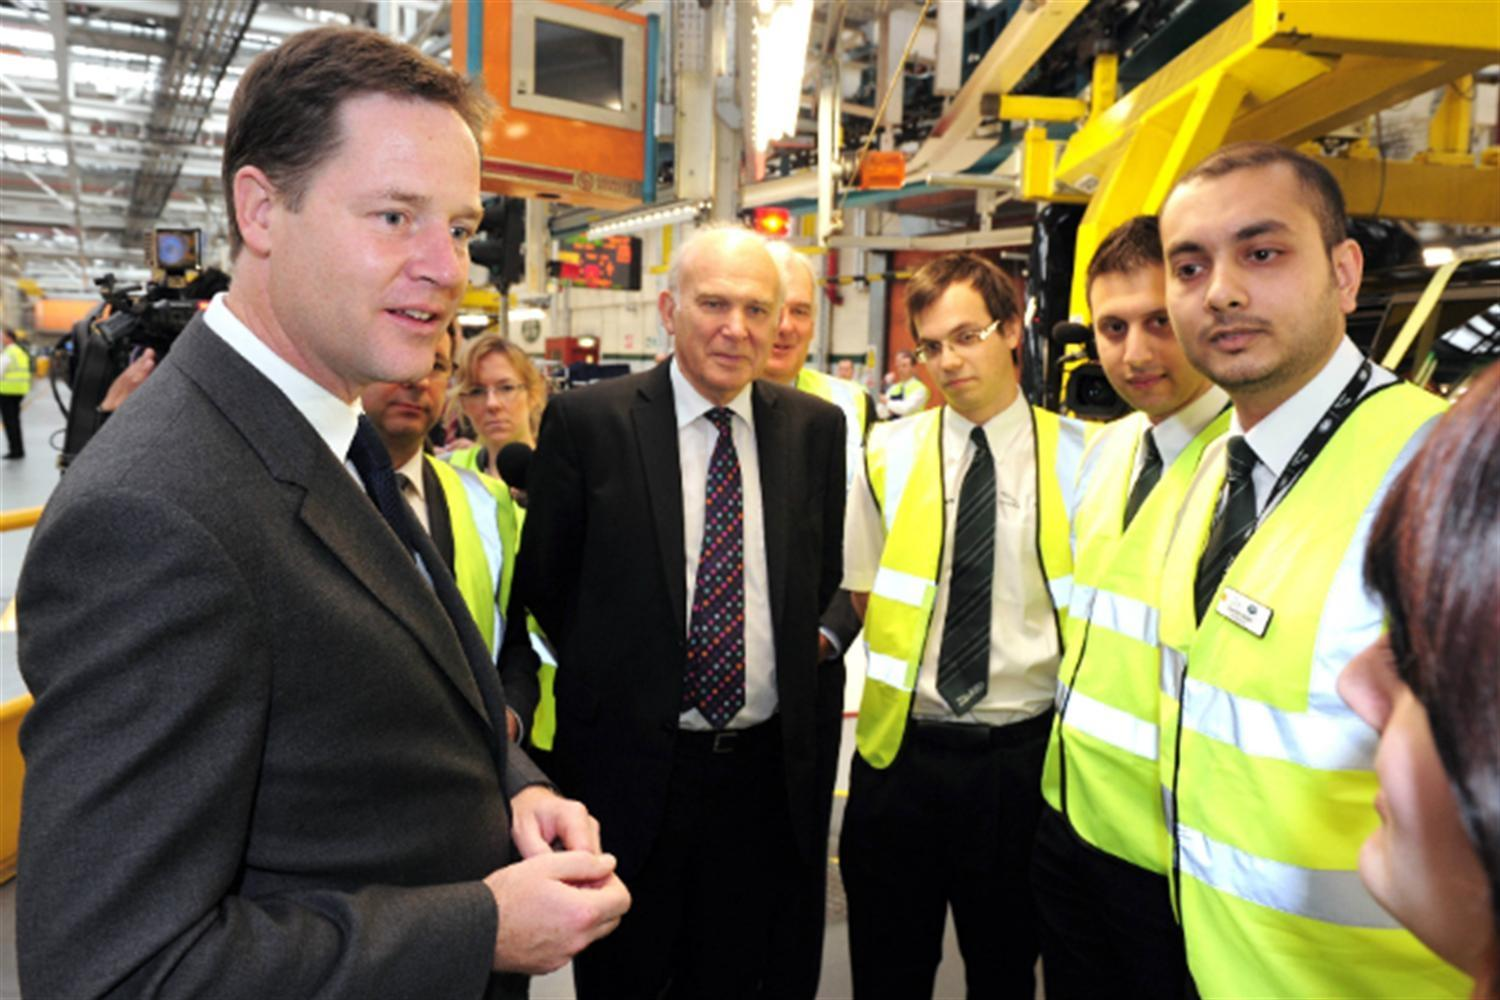 150 Apprenticeships Open at JLR